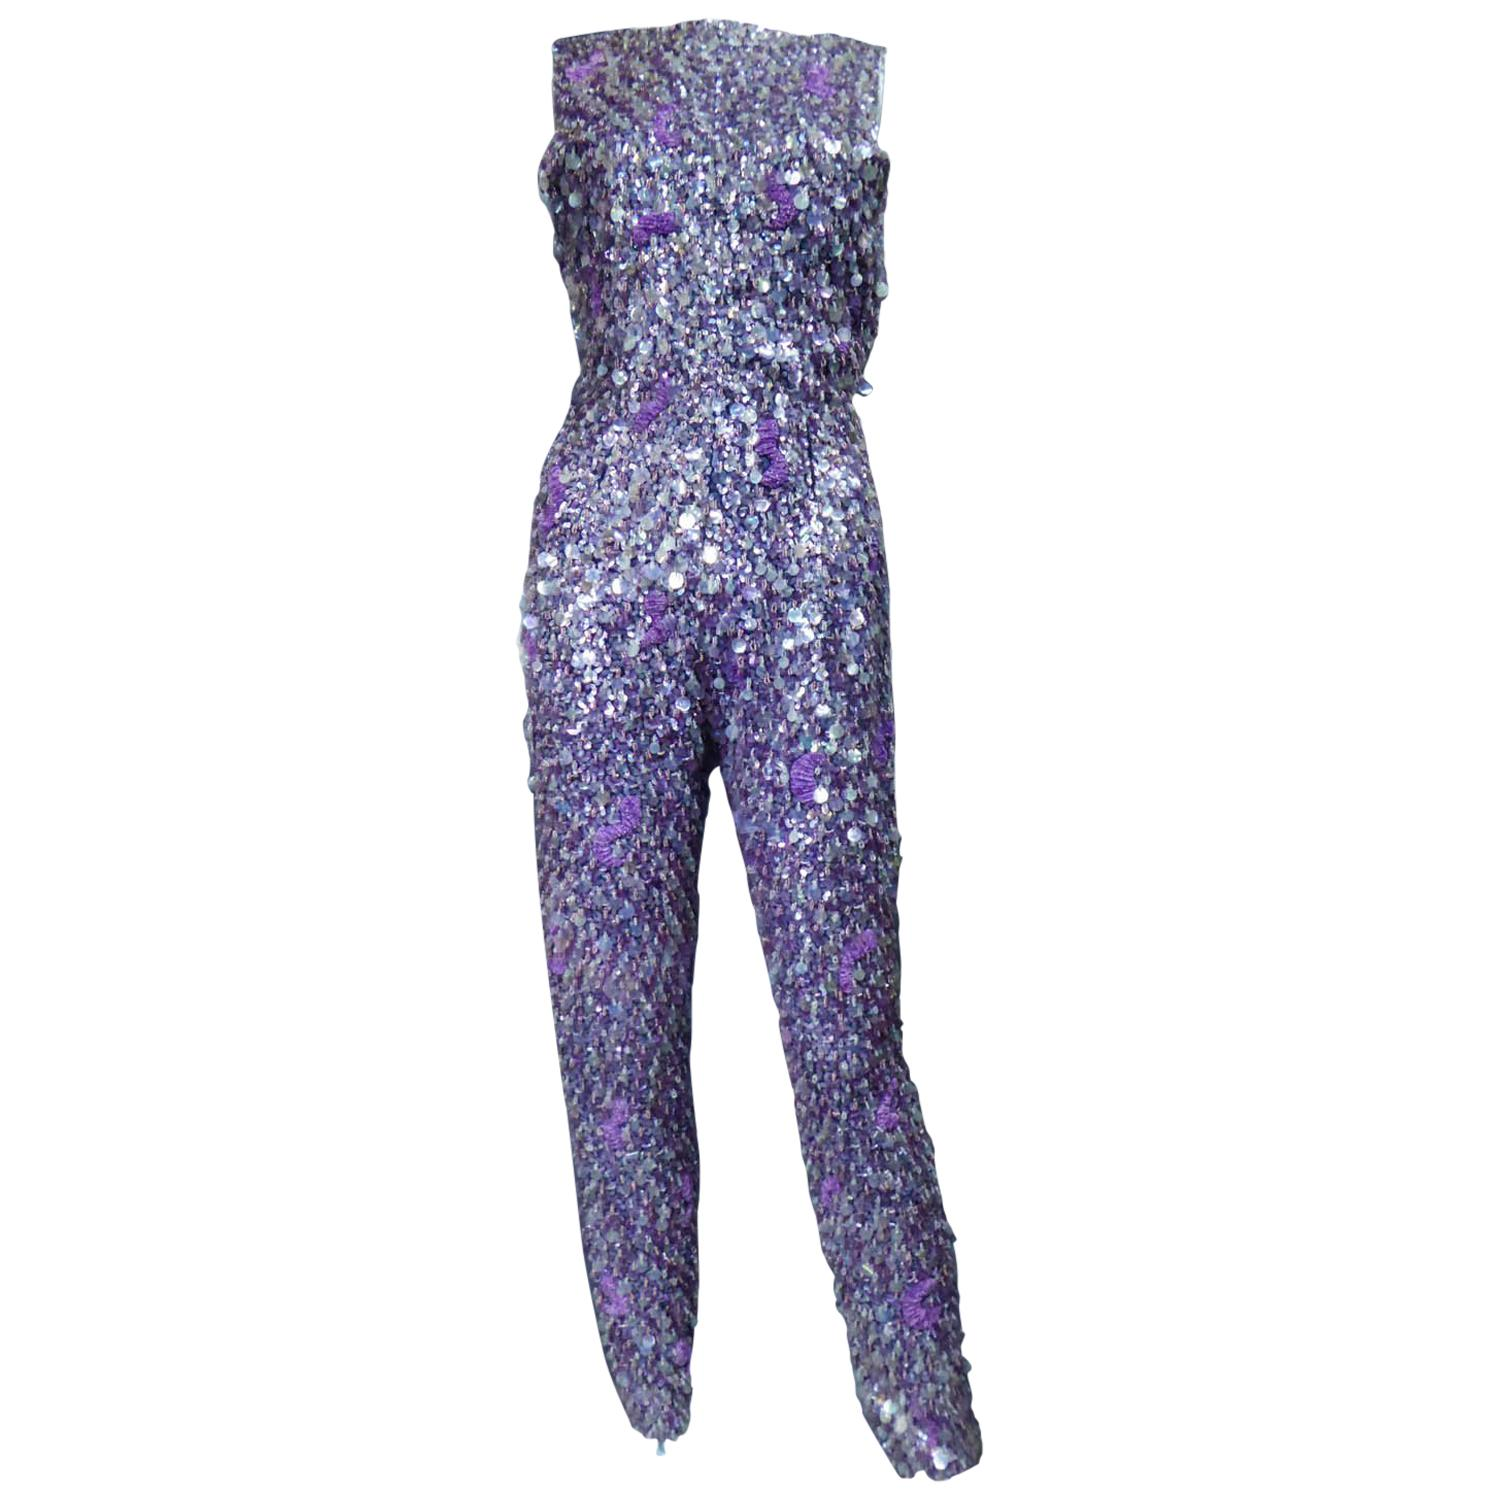 Mila Schön Sequin Embroidered Trousers Suit Circa 1968